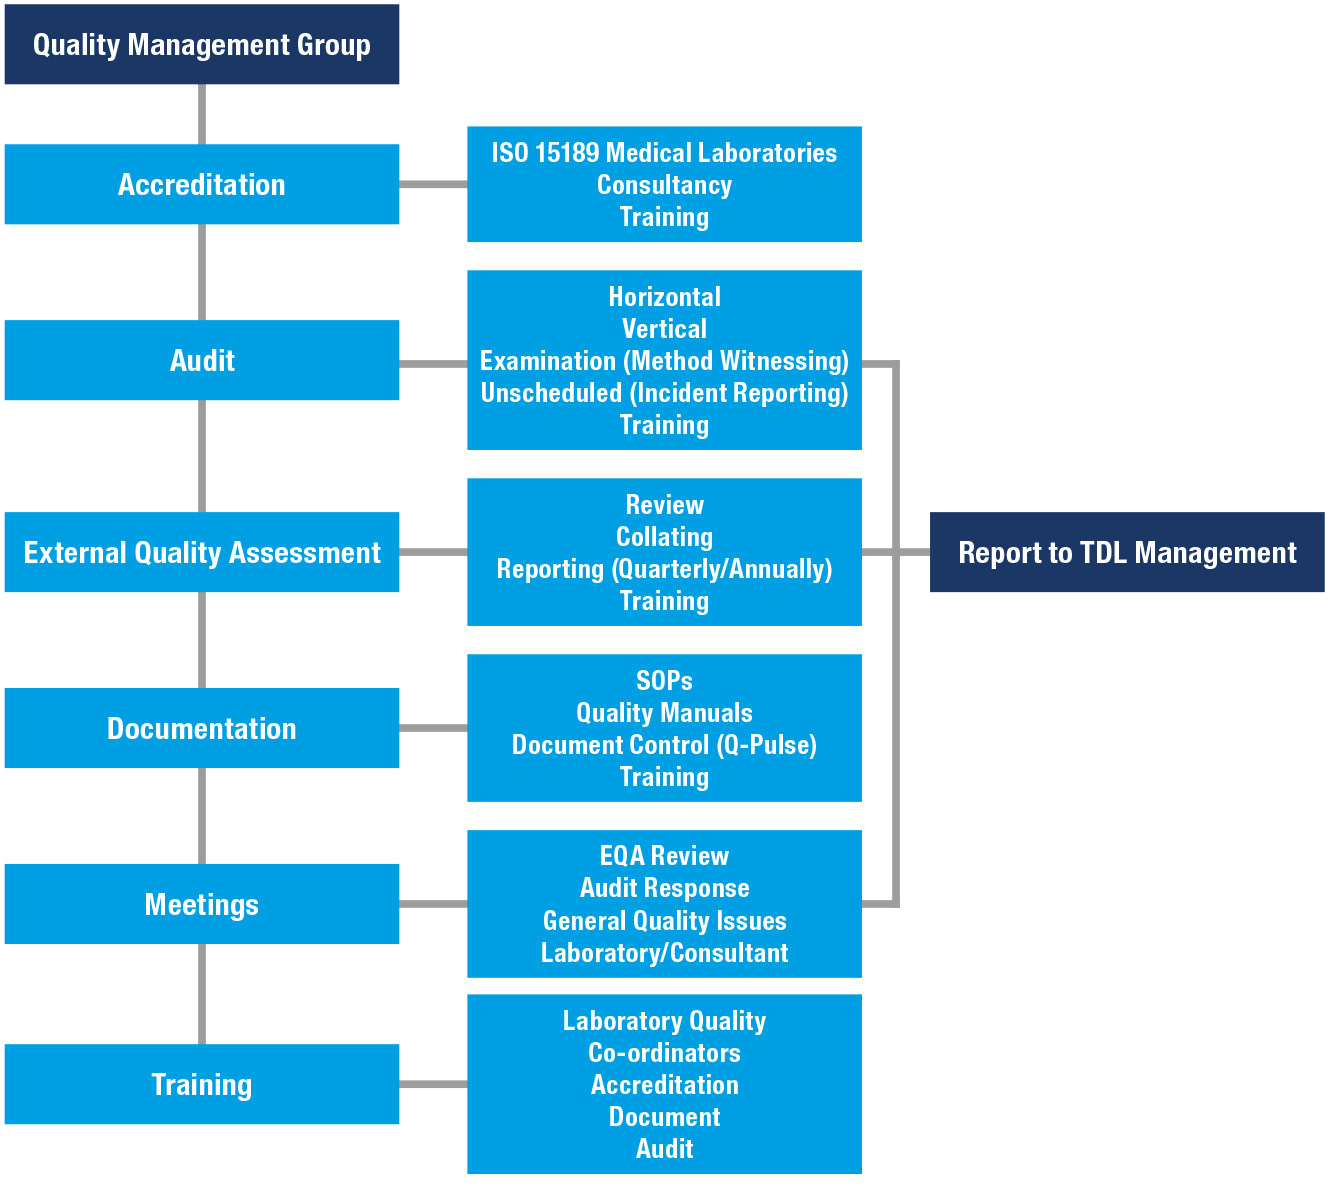 Quality Management Group Activities diagram